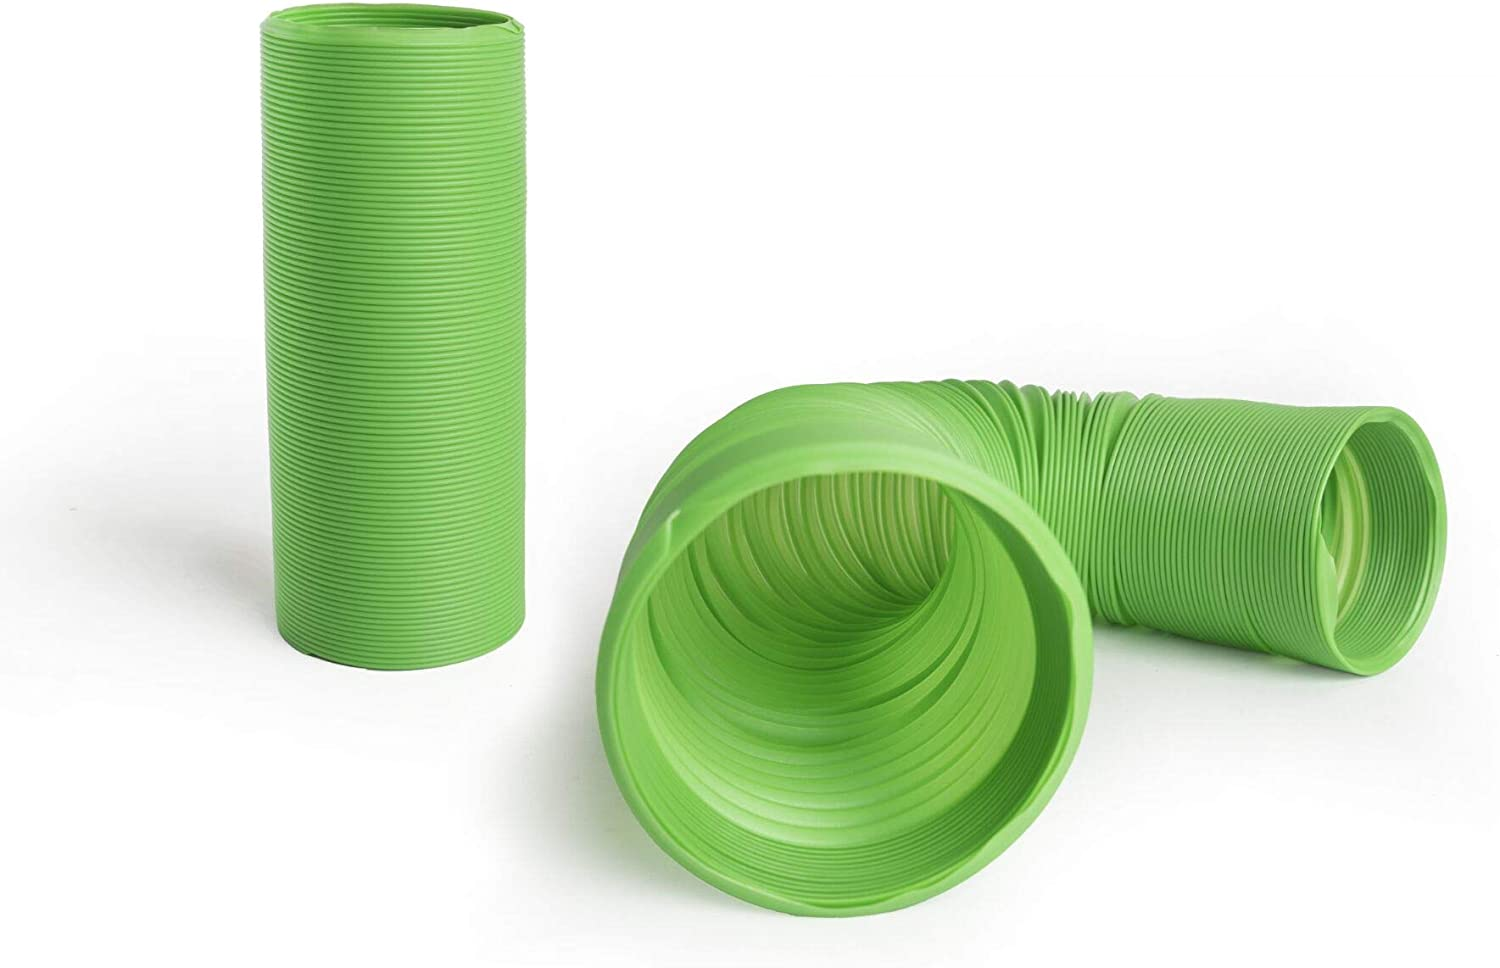 Niteangel Small Pet Fun Tunnel, 39 x 4 inches - Fit Adult Ferrets and Rats Green